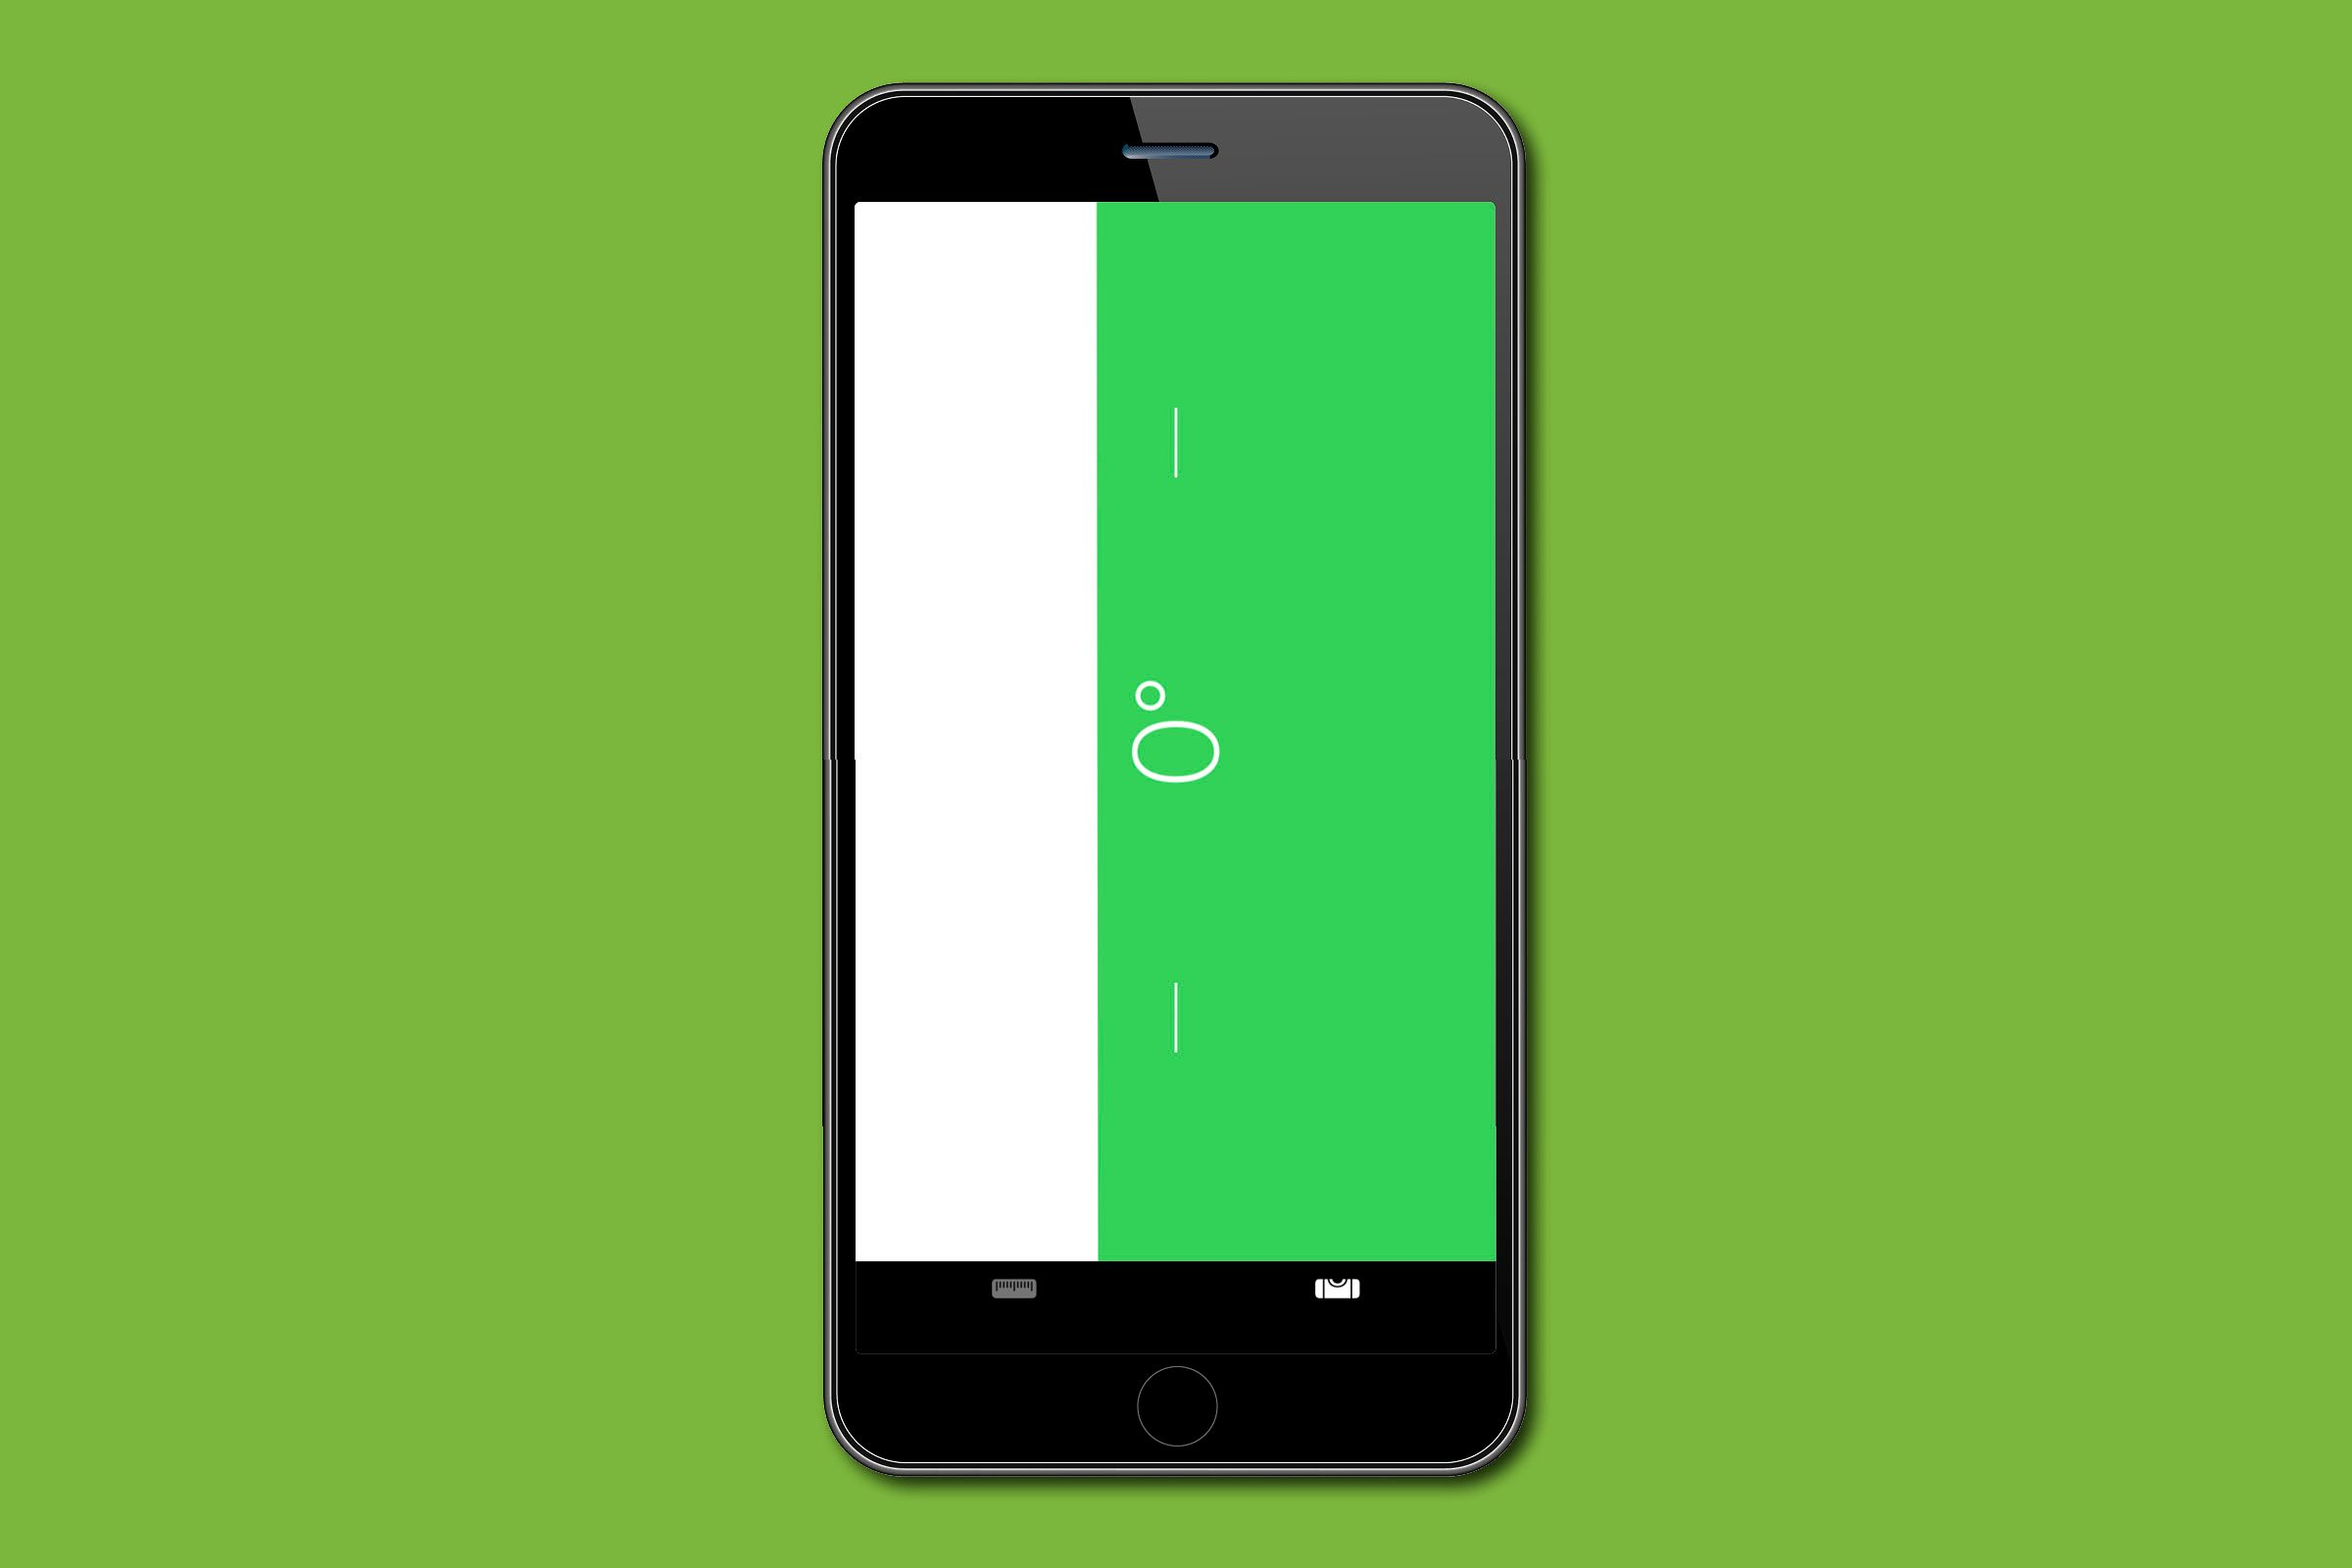 Use your iPhone's Measure app as a spirit level